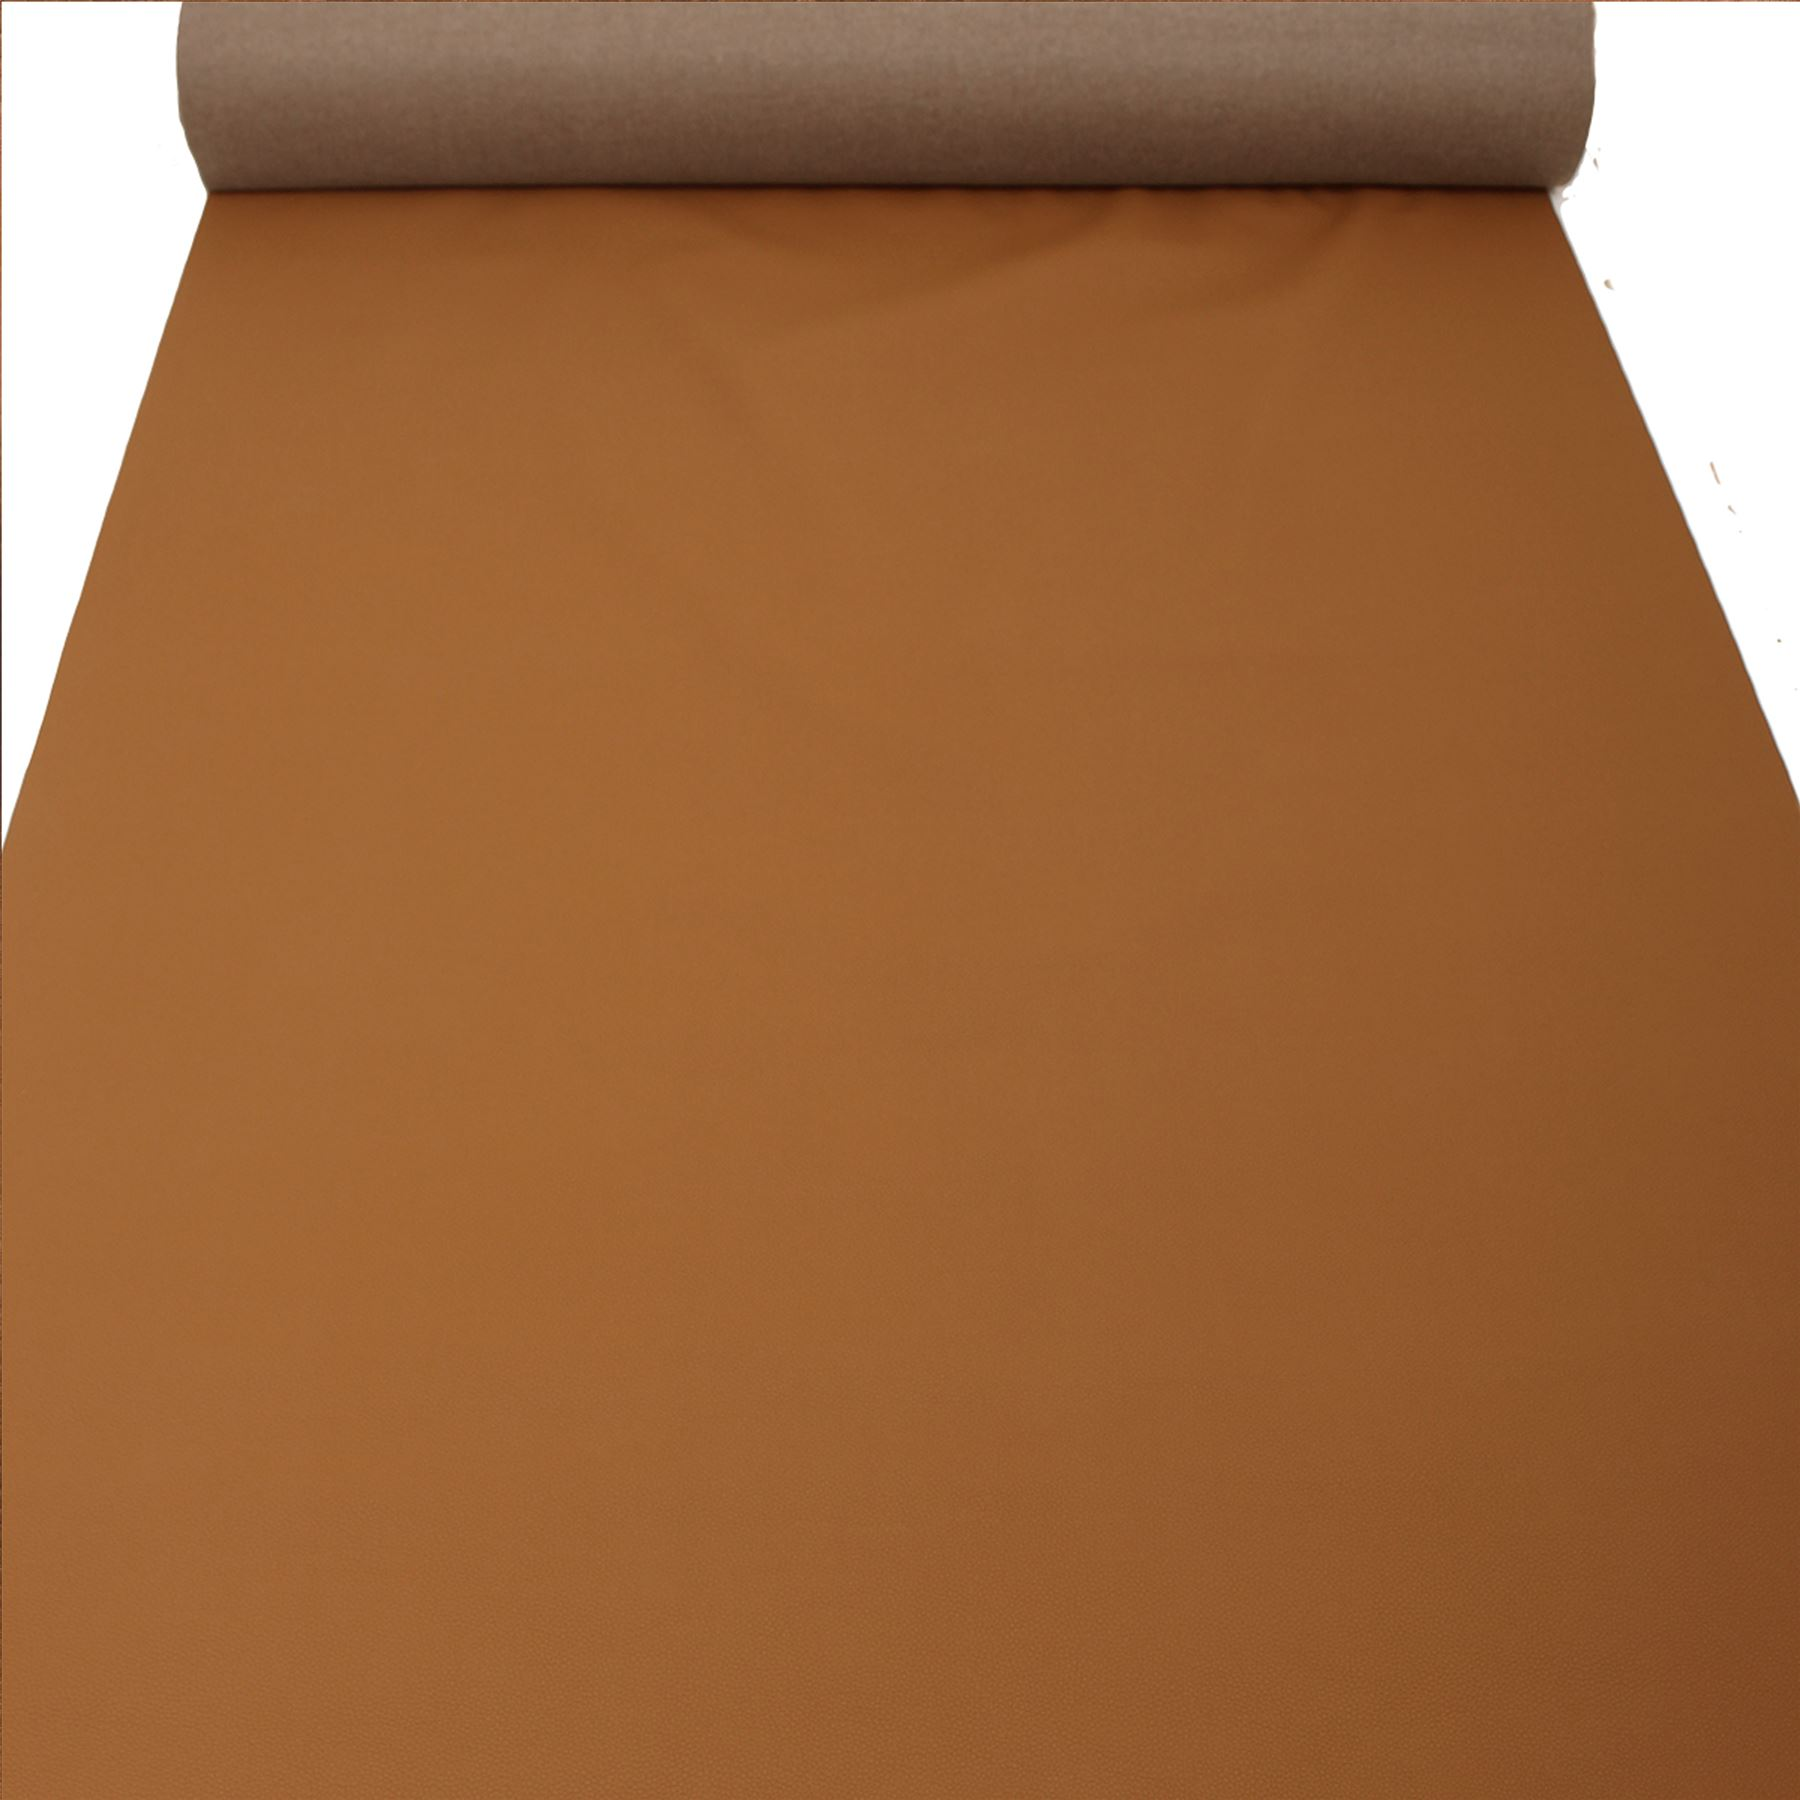 Nova-Faux-Leatherette-Artificial-Leather-Heavy-Grain-Upholstery-Vehicle-Fabric thumbnail 11